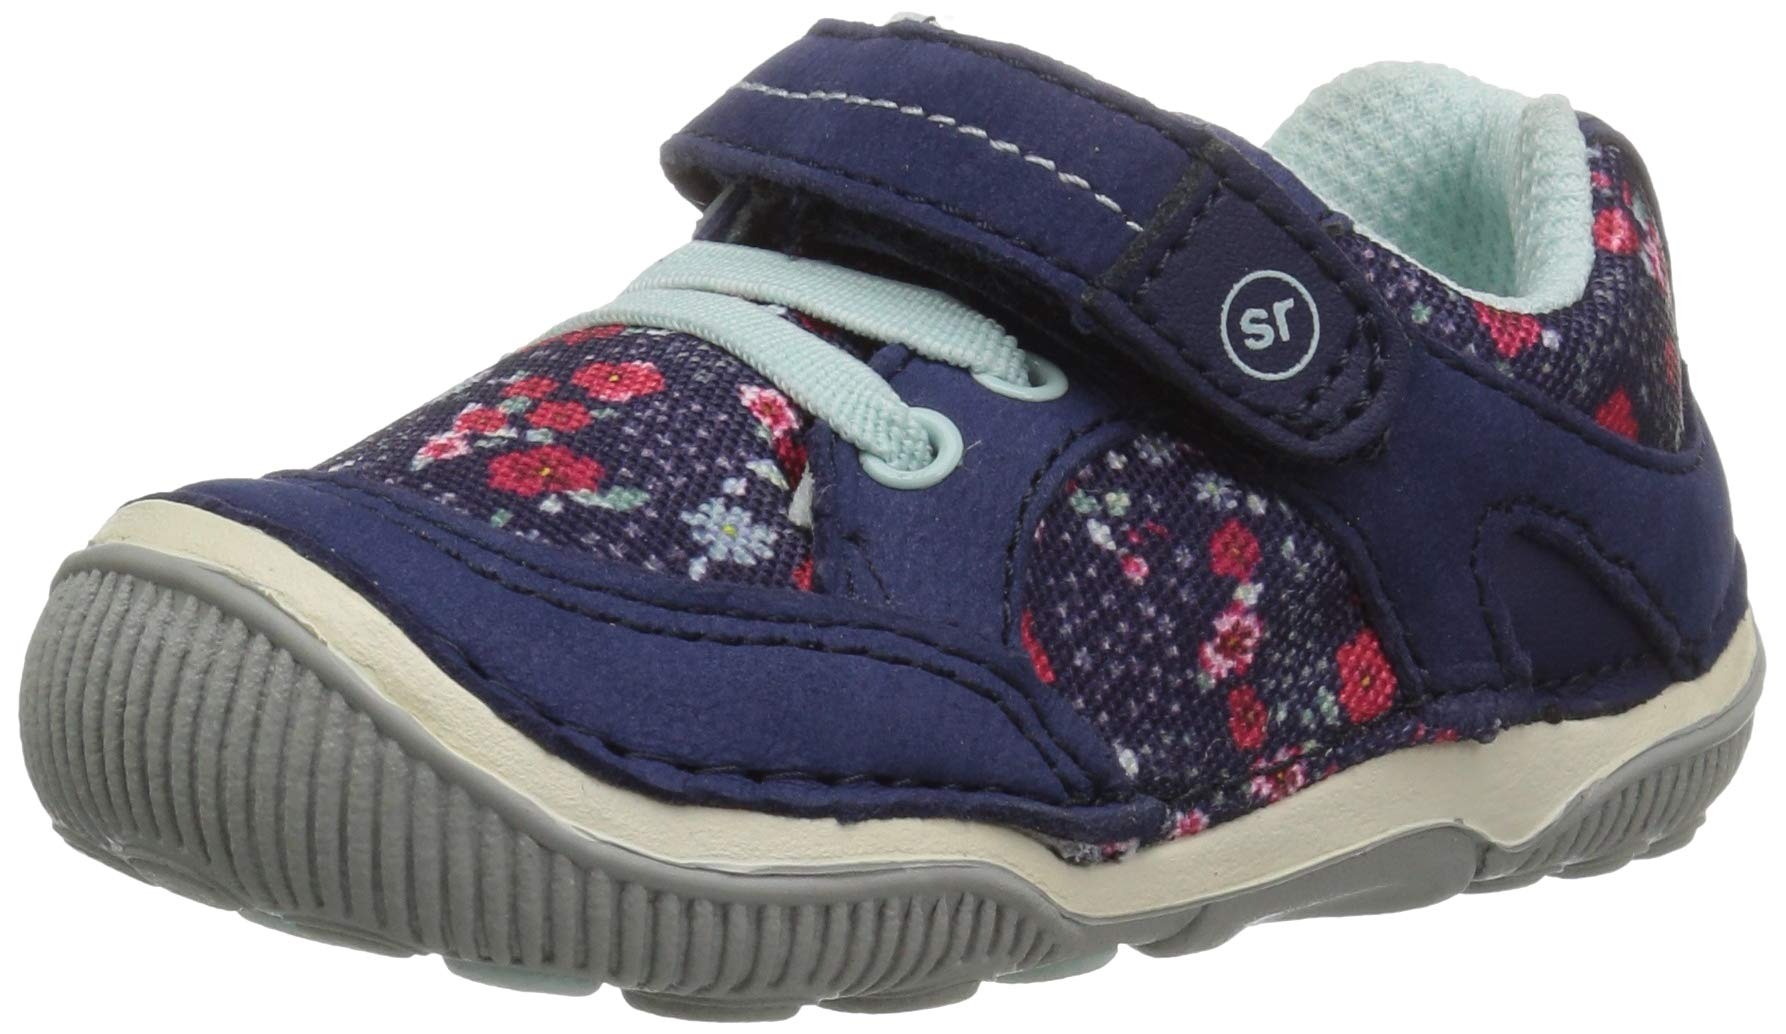 Stride Rite Rosie Toddler Girl's Lightweight Leather Sneaker, Navy, 7 M US by Stride Rite